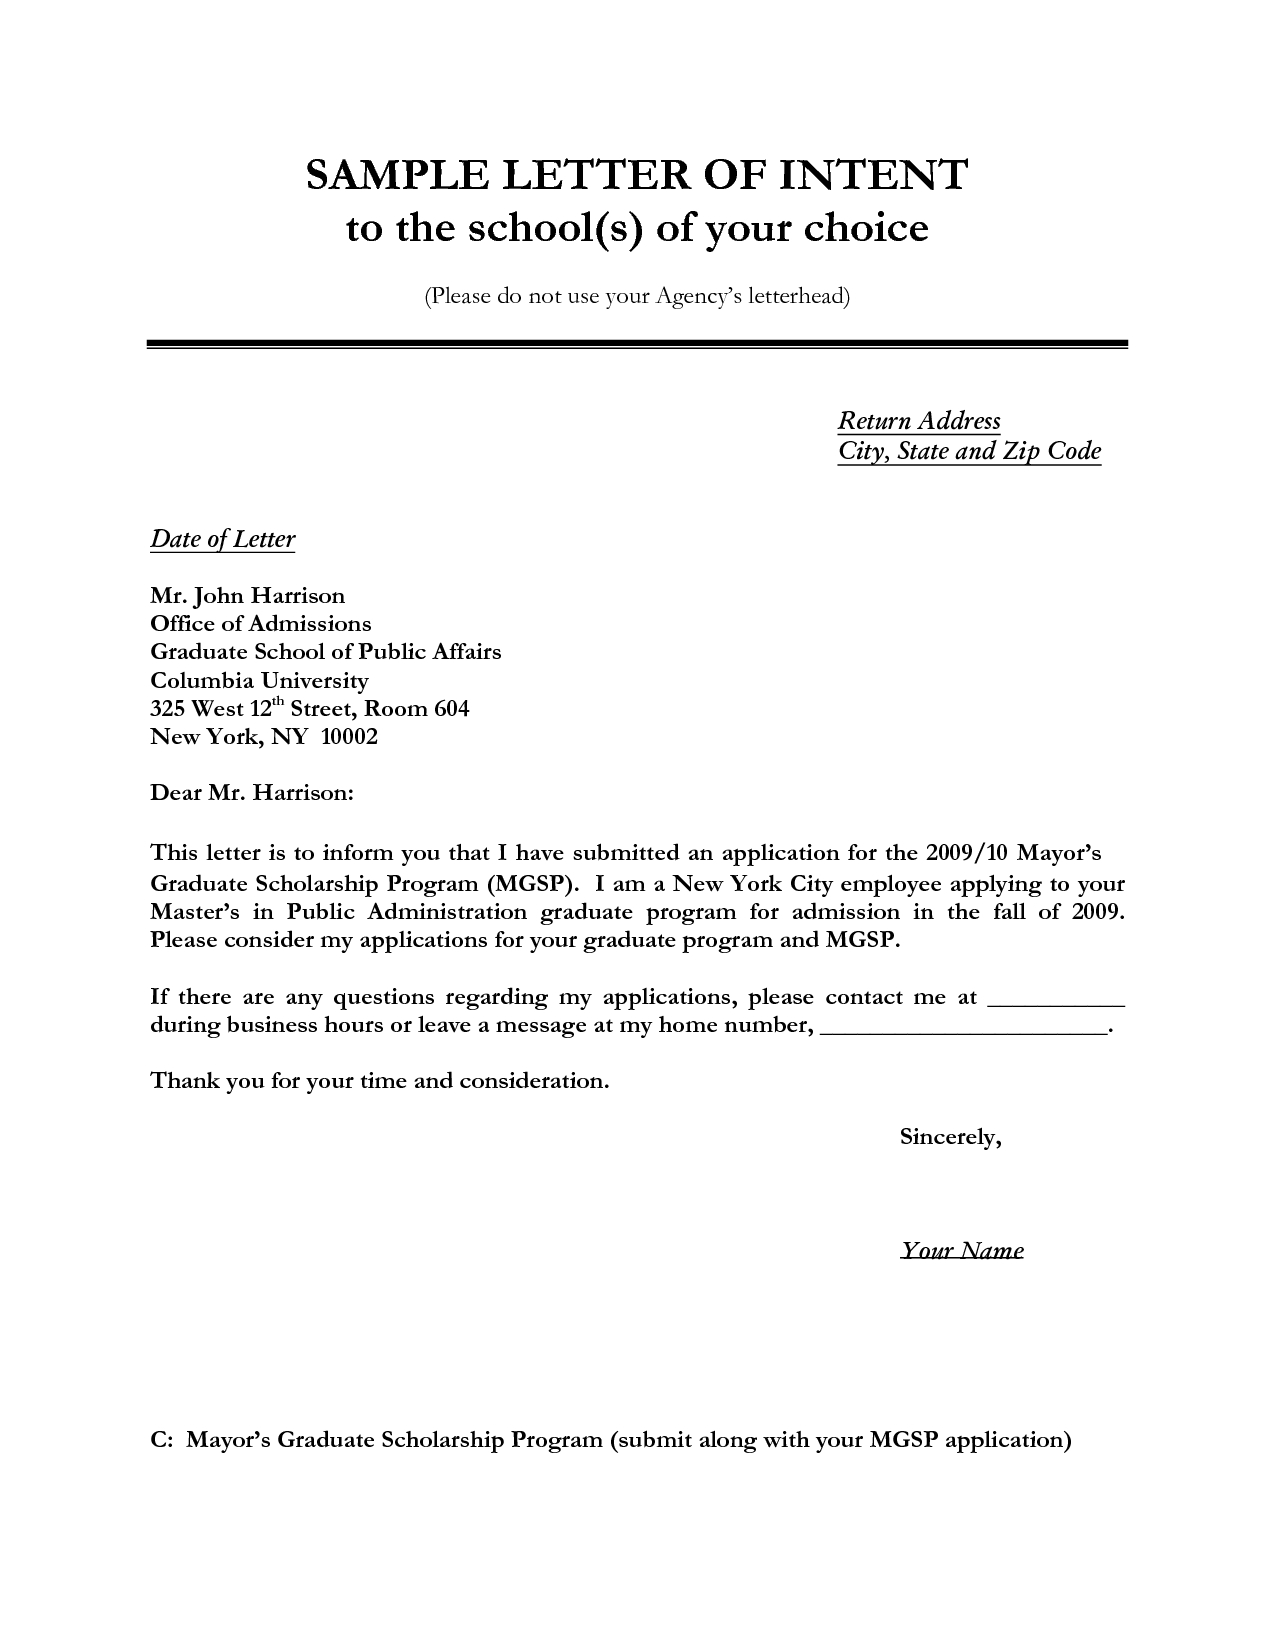 Iou Letter Template - Letter Of Intent Sample